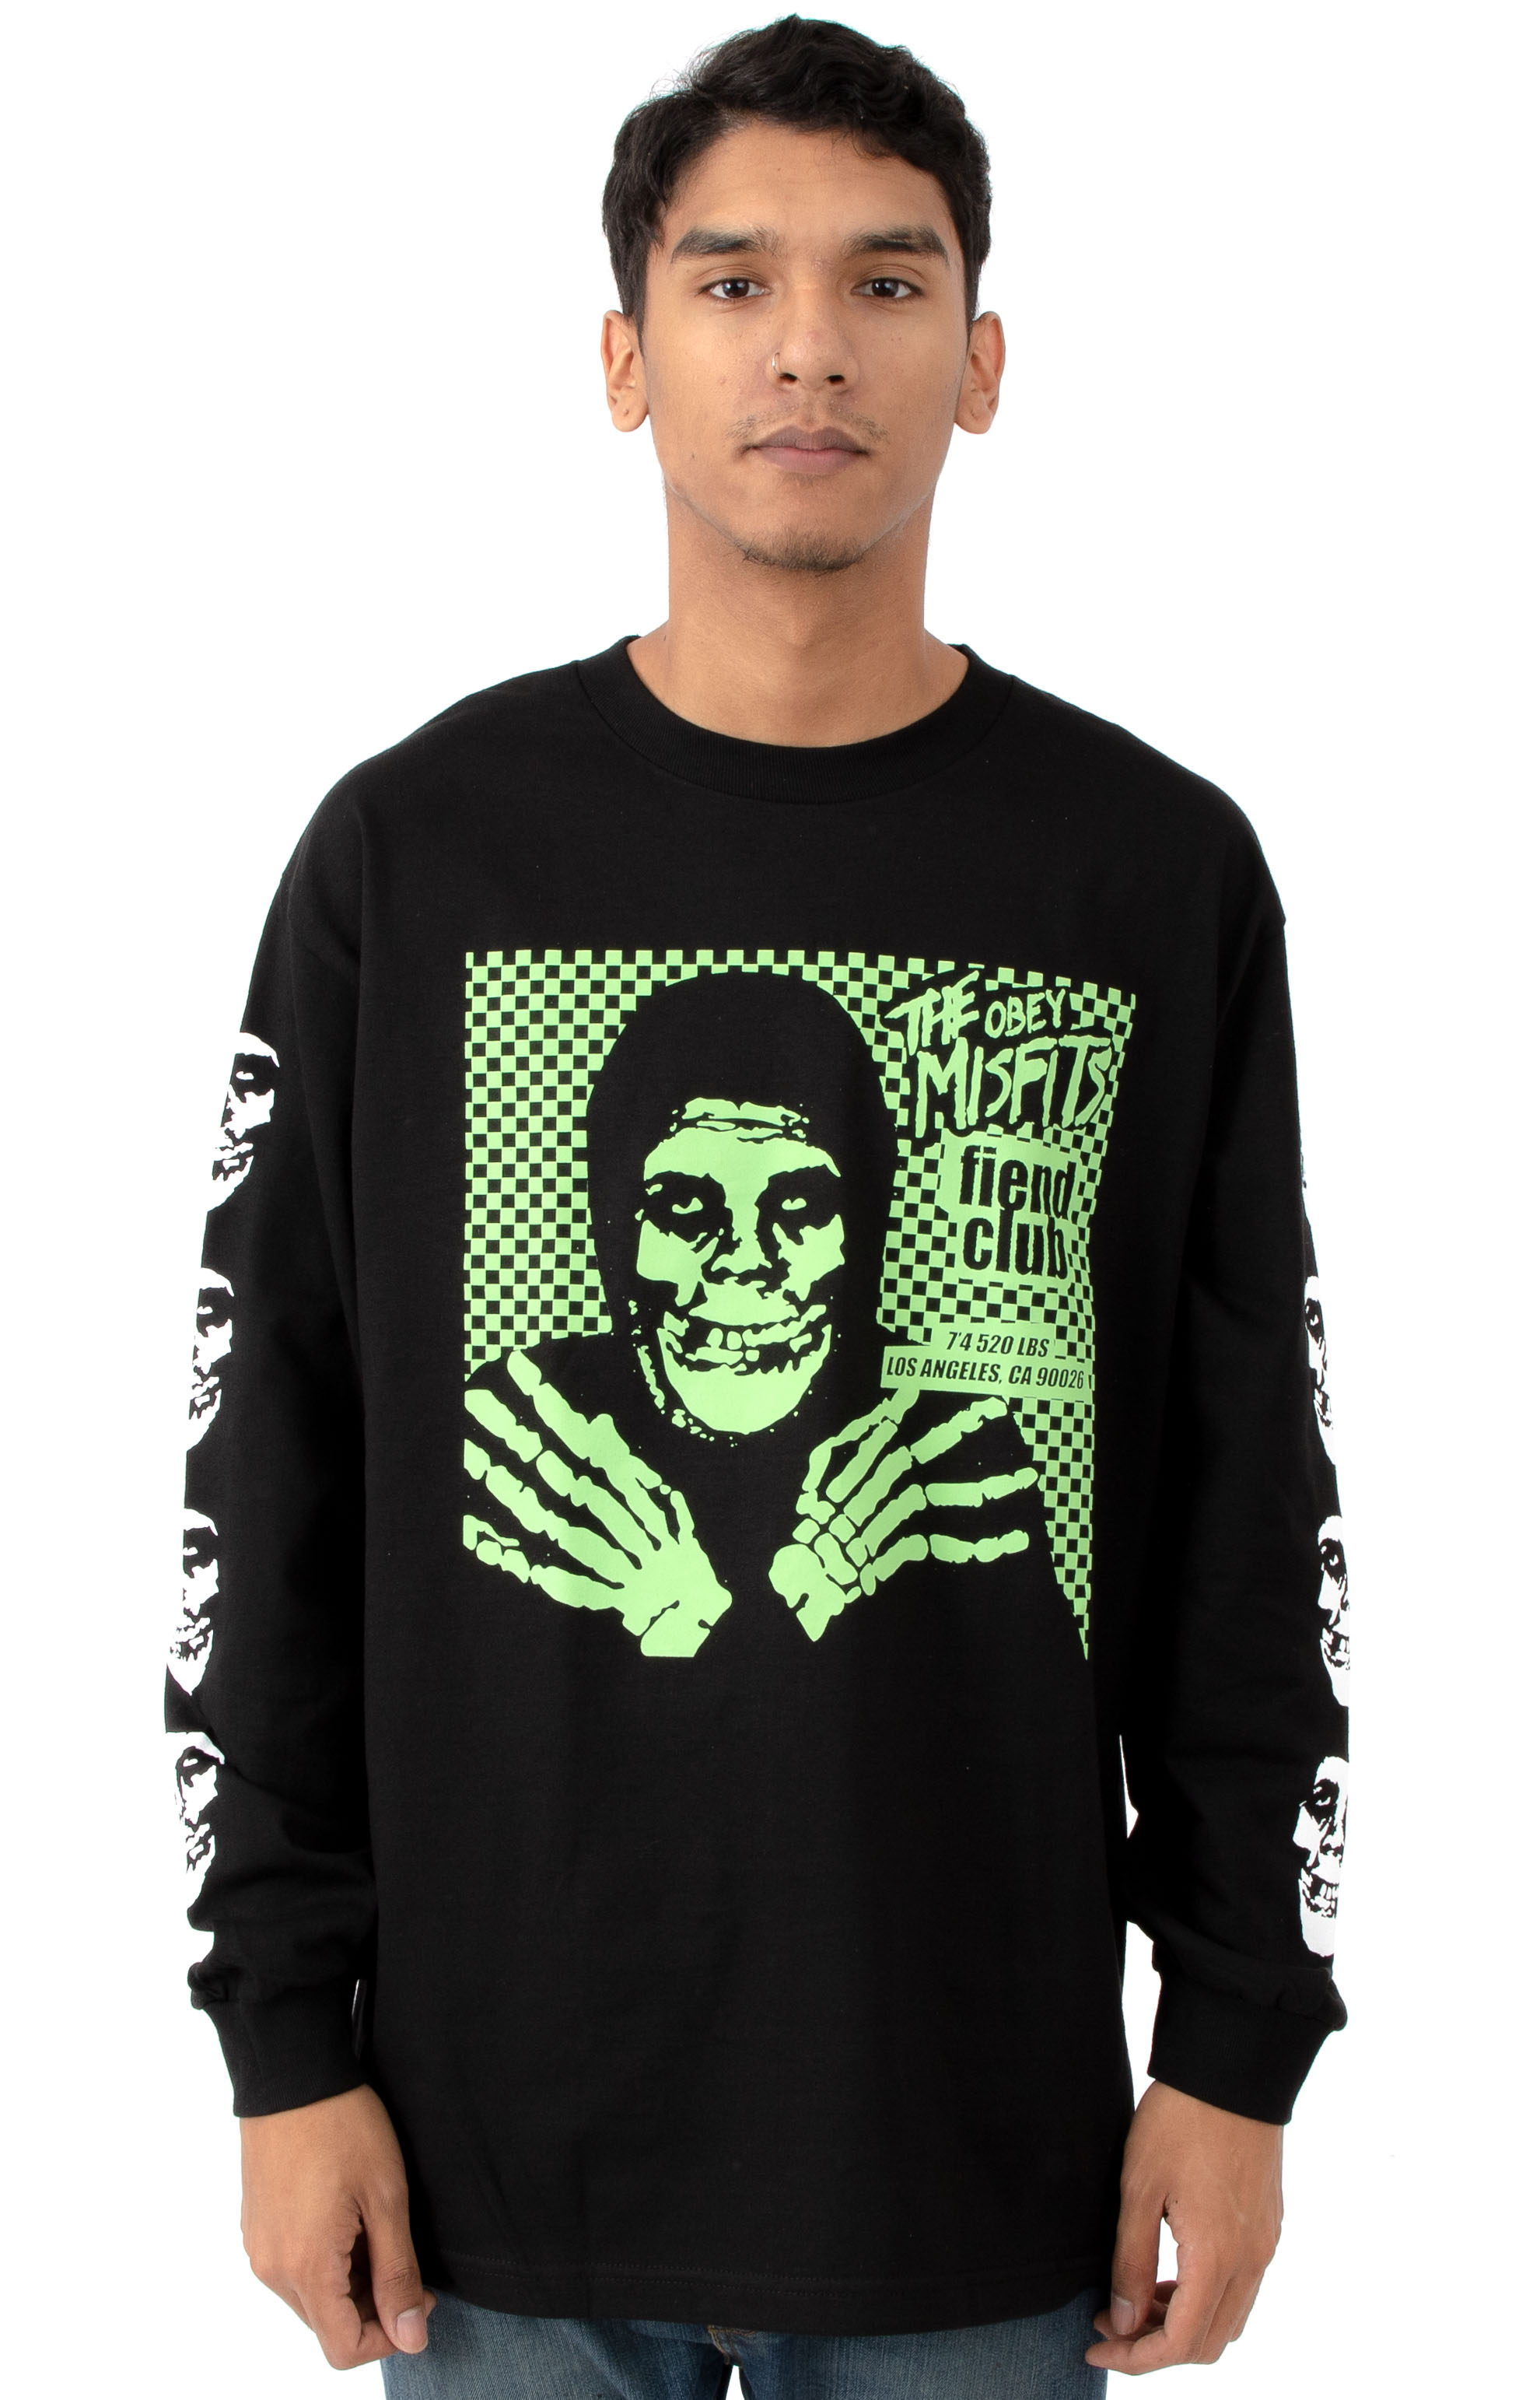 Fiend Club L/S T-Shirt - Hallow Black